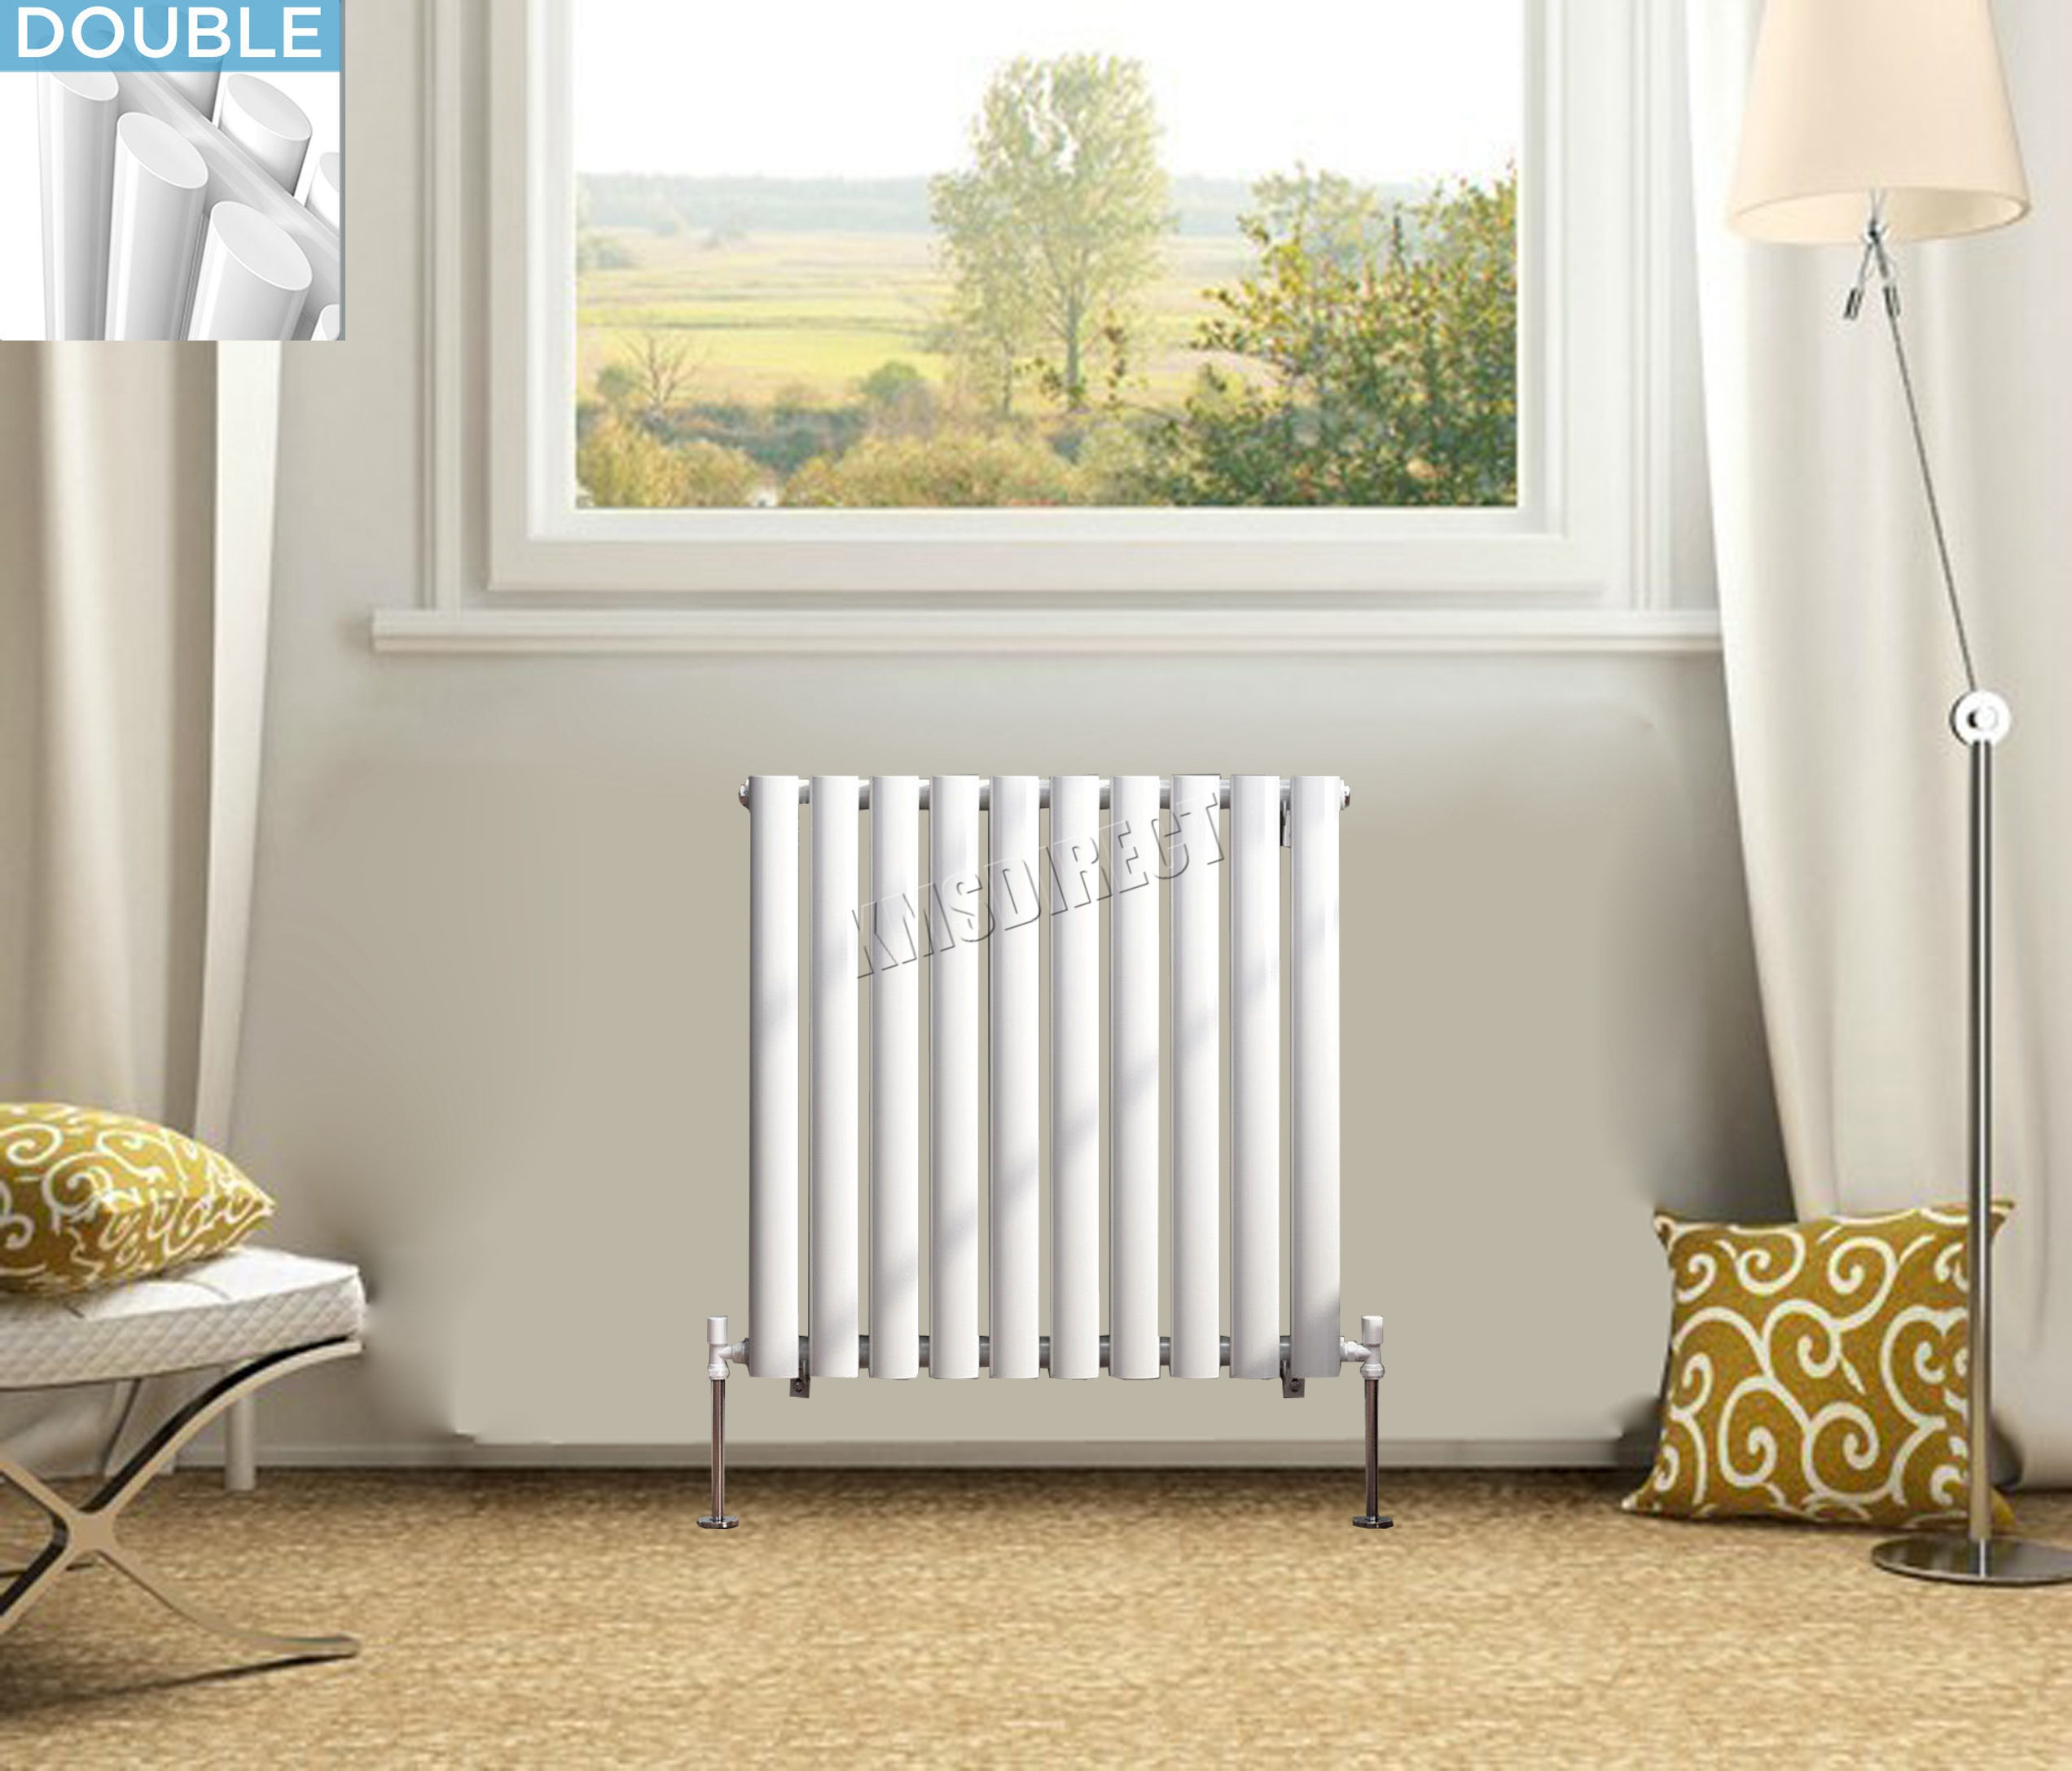 foxhunter horizontal ovale colonne radiateur salle de bains radiateur simple double designer ebay. Black Bedroom Furniture Sets. Home Design Ideas